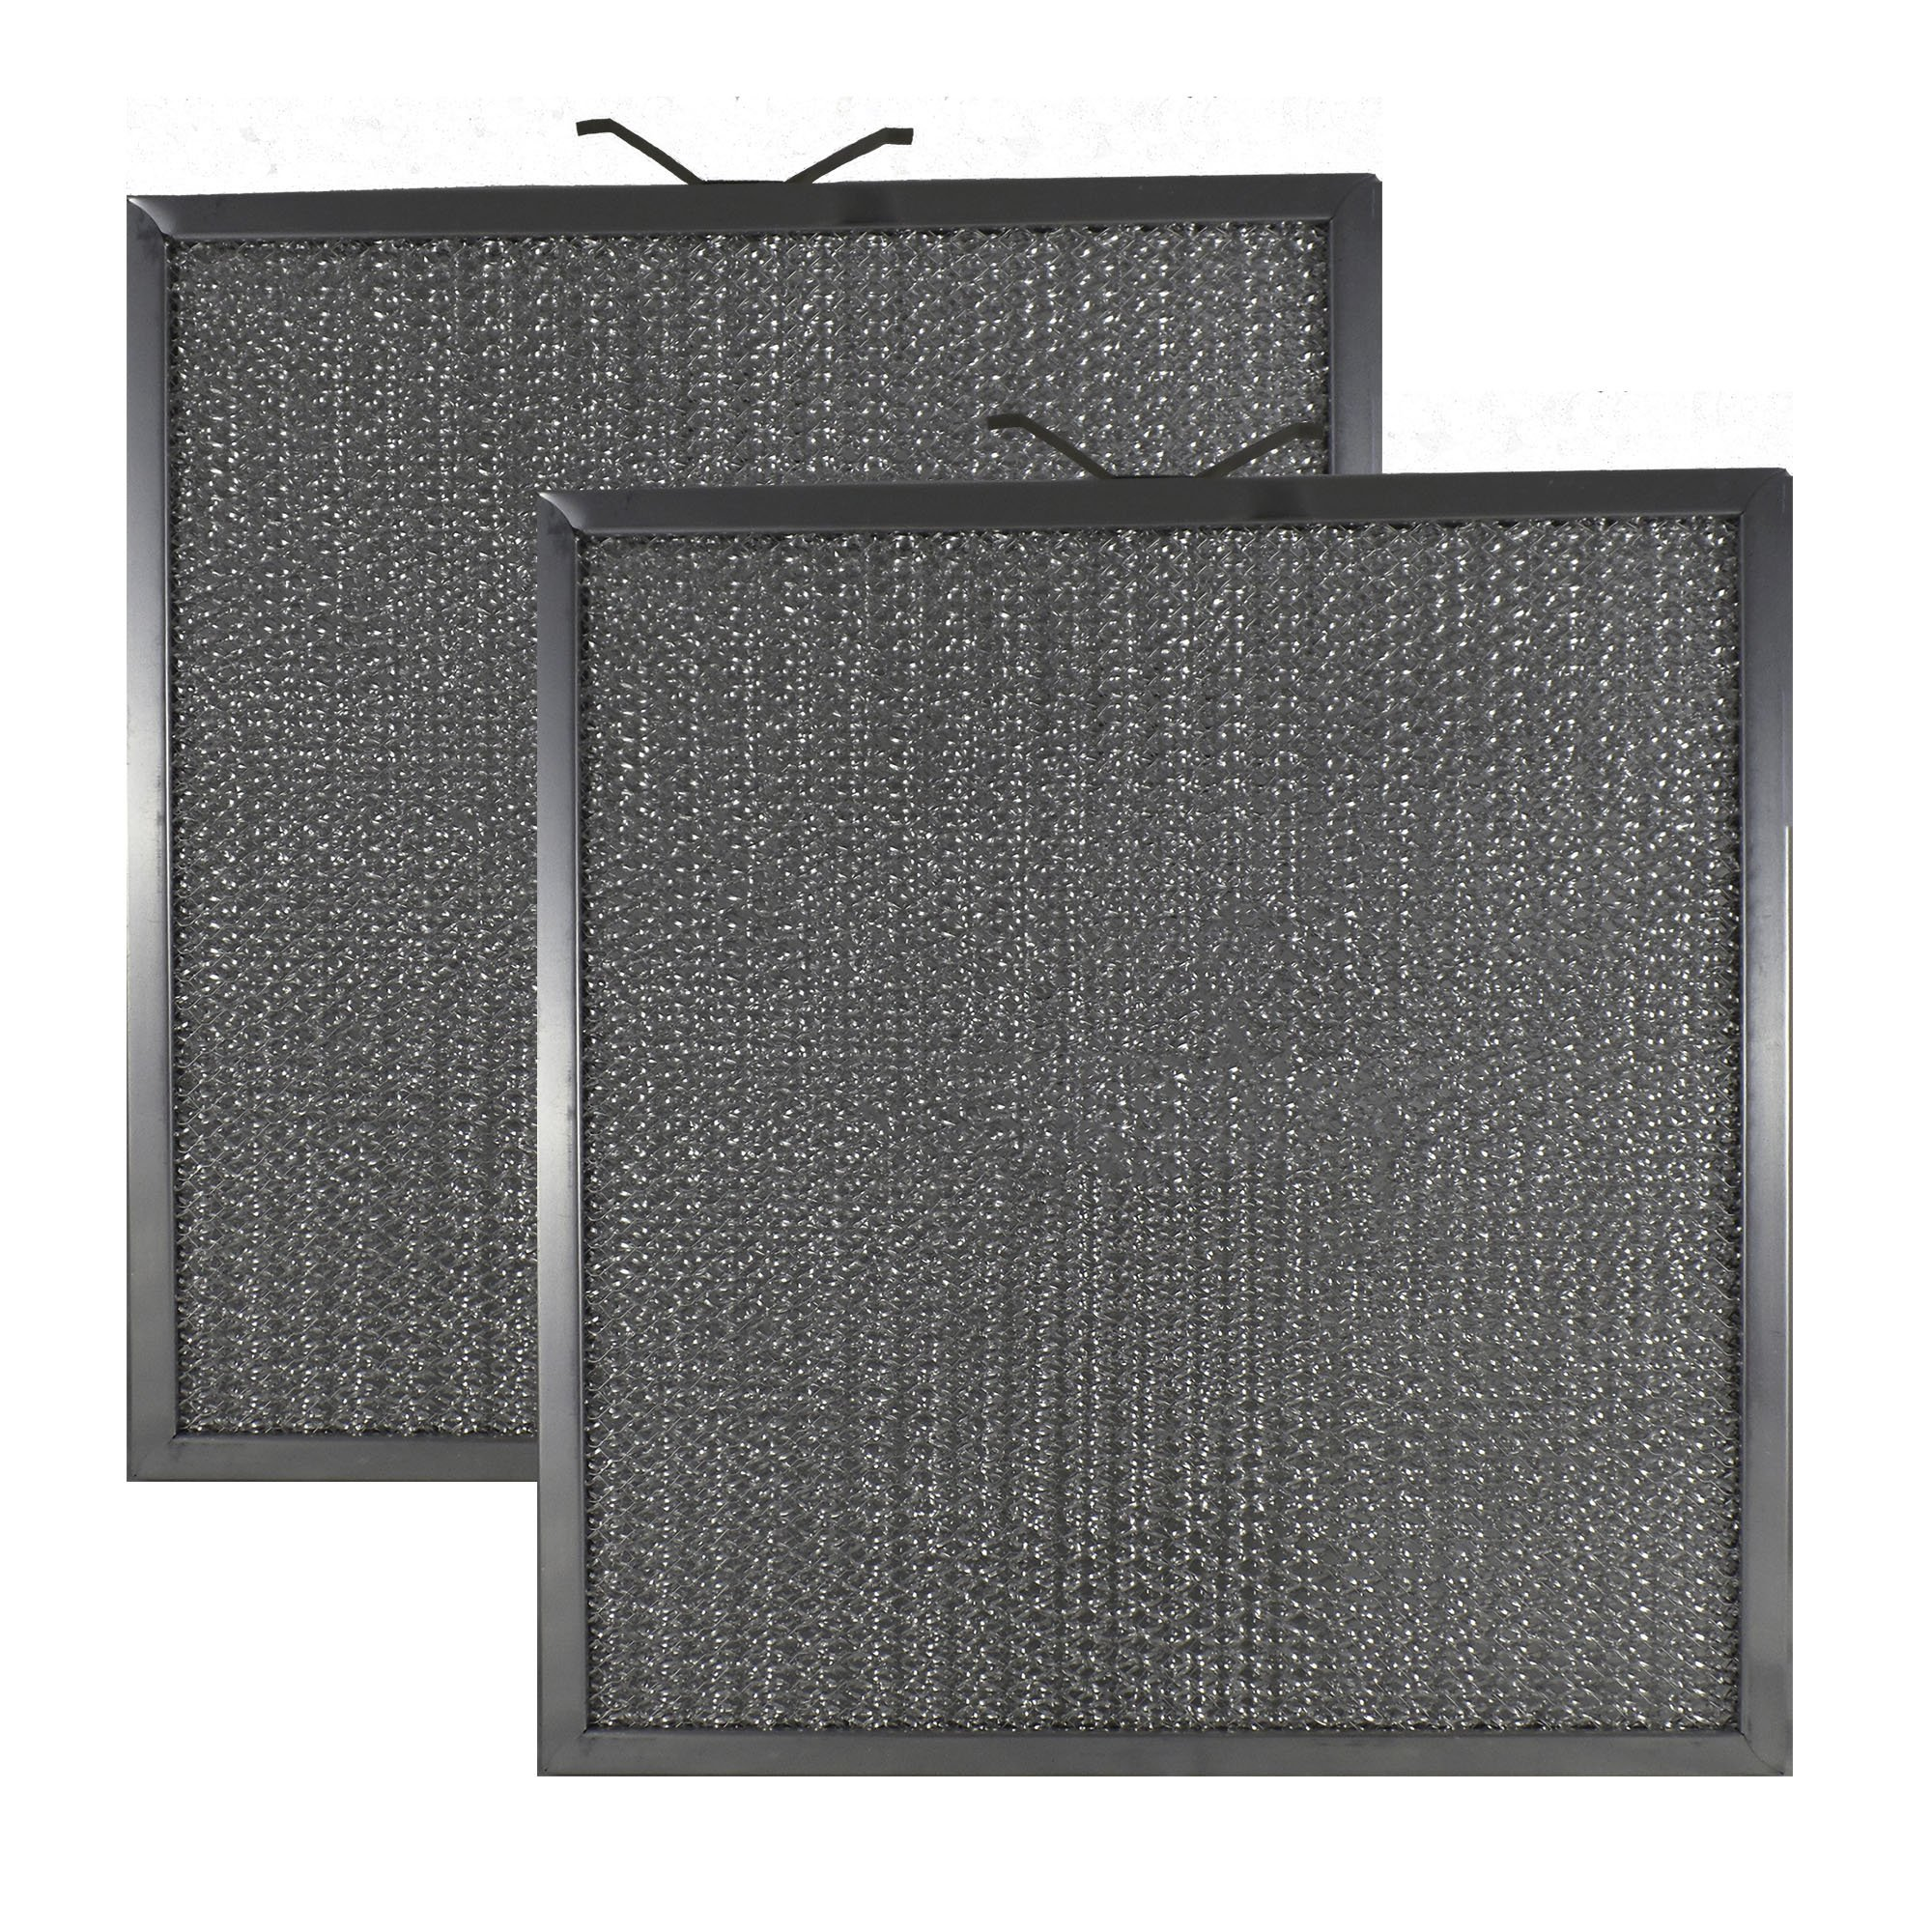 2 PACK Air Filter Factory 11-1/4 X 11-3/4 X 3/8 Range Hood Aluminum Grease Filters AFF144-M